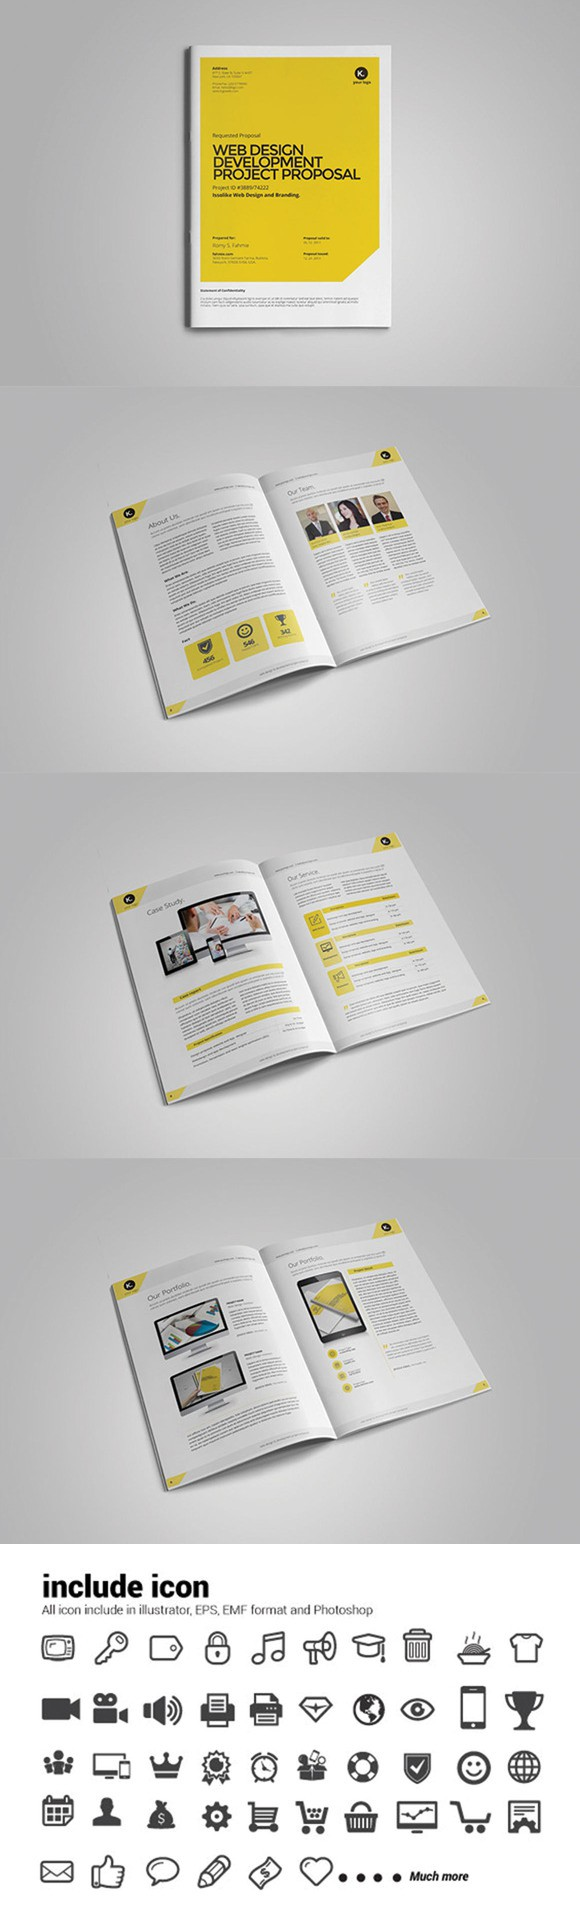 Web Design Proposal Stationery Templates   Stationery